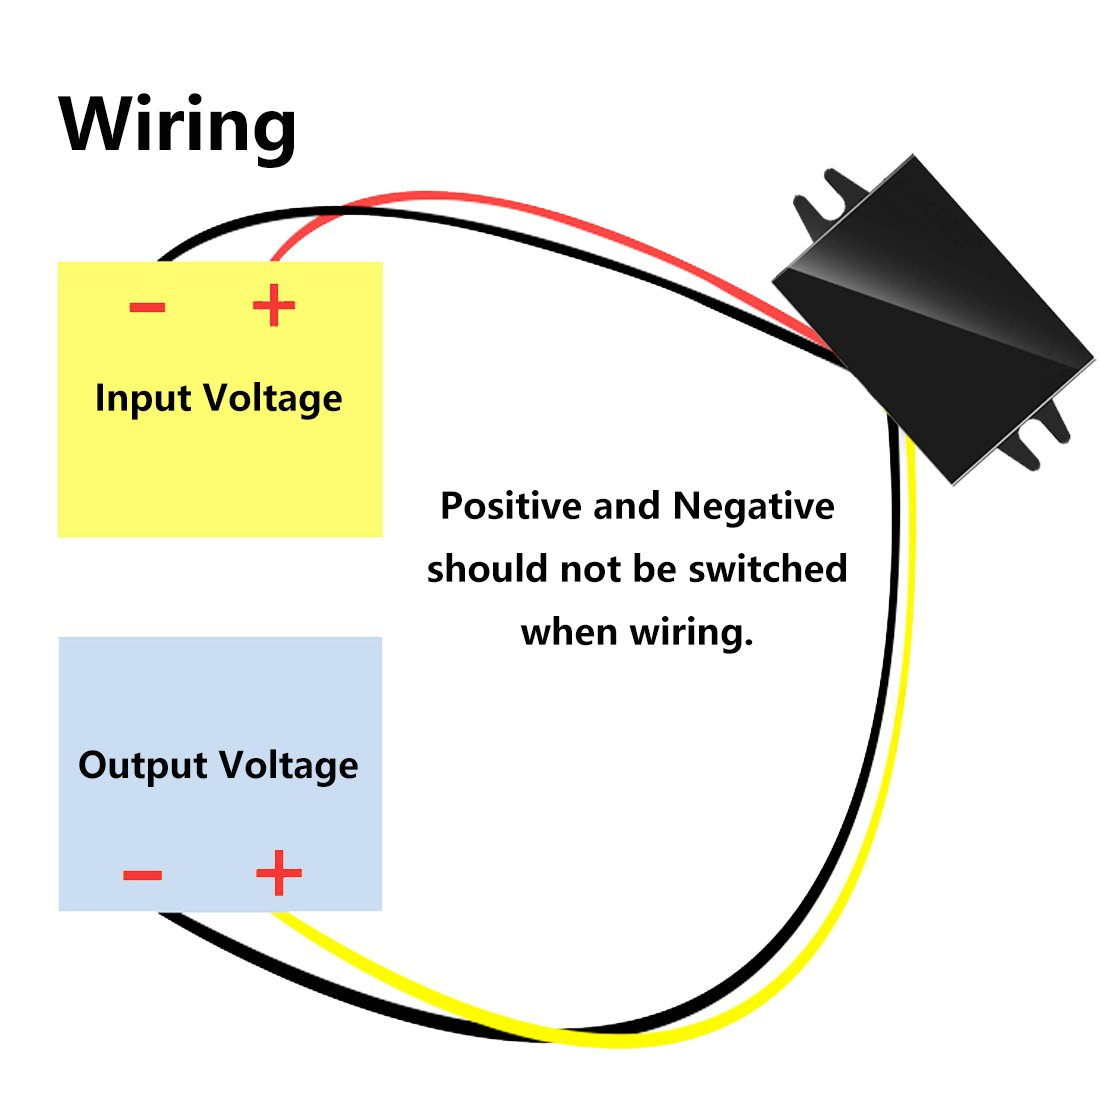 Aweking Waterproof DC/DC 12V Step Up to 19V 2A 38W Voltage Boost Converter Regulator Transformer Power Supply for Car Truck Vehicle CE listed